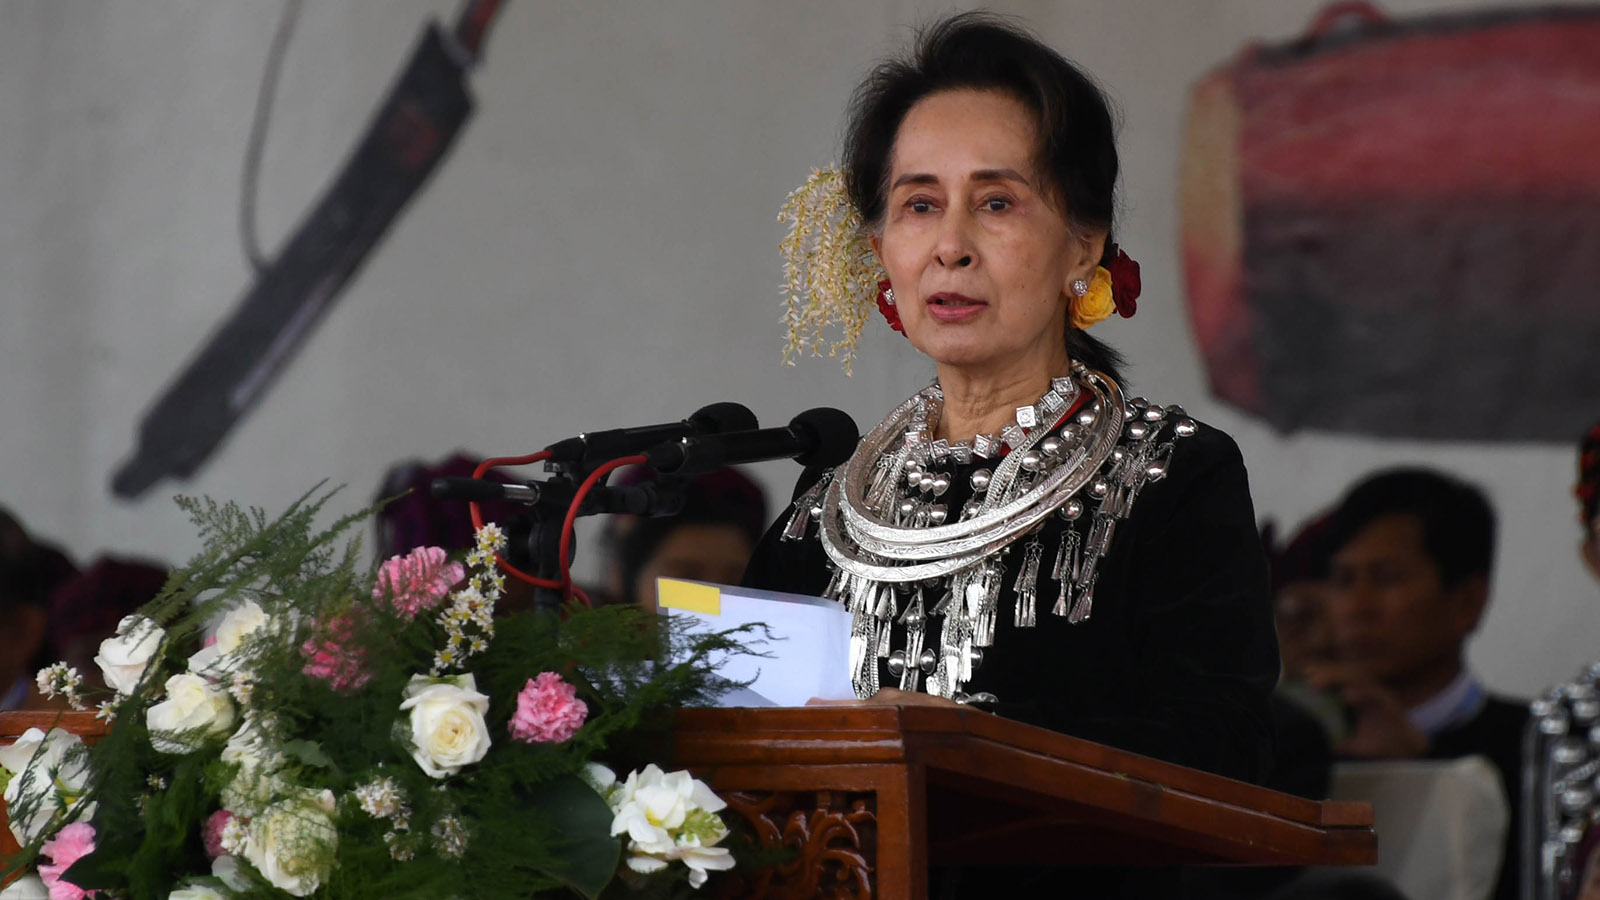 State Counsellor Daw Aung San Suu Kyi delivers the opening speech at the 72nd Kachin State Day celebrations in Myitkyina, Kachin State yesterday.Photo: MNA